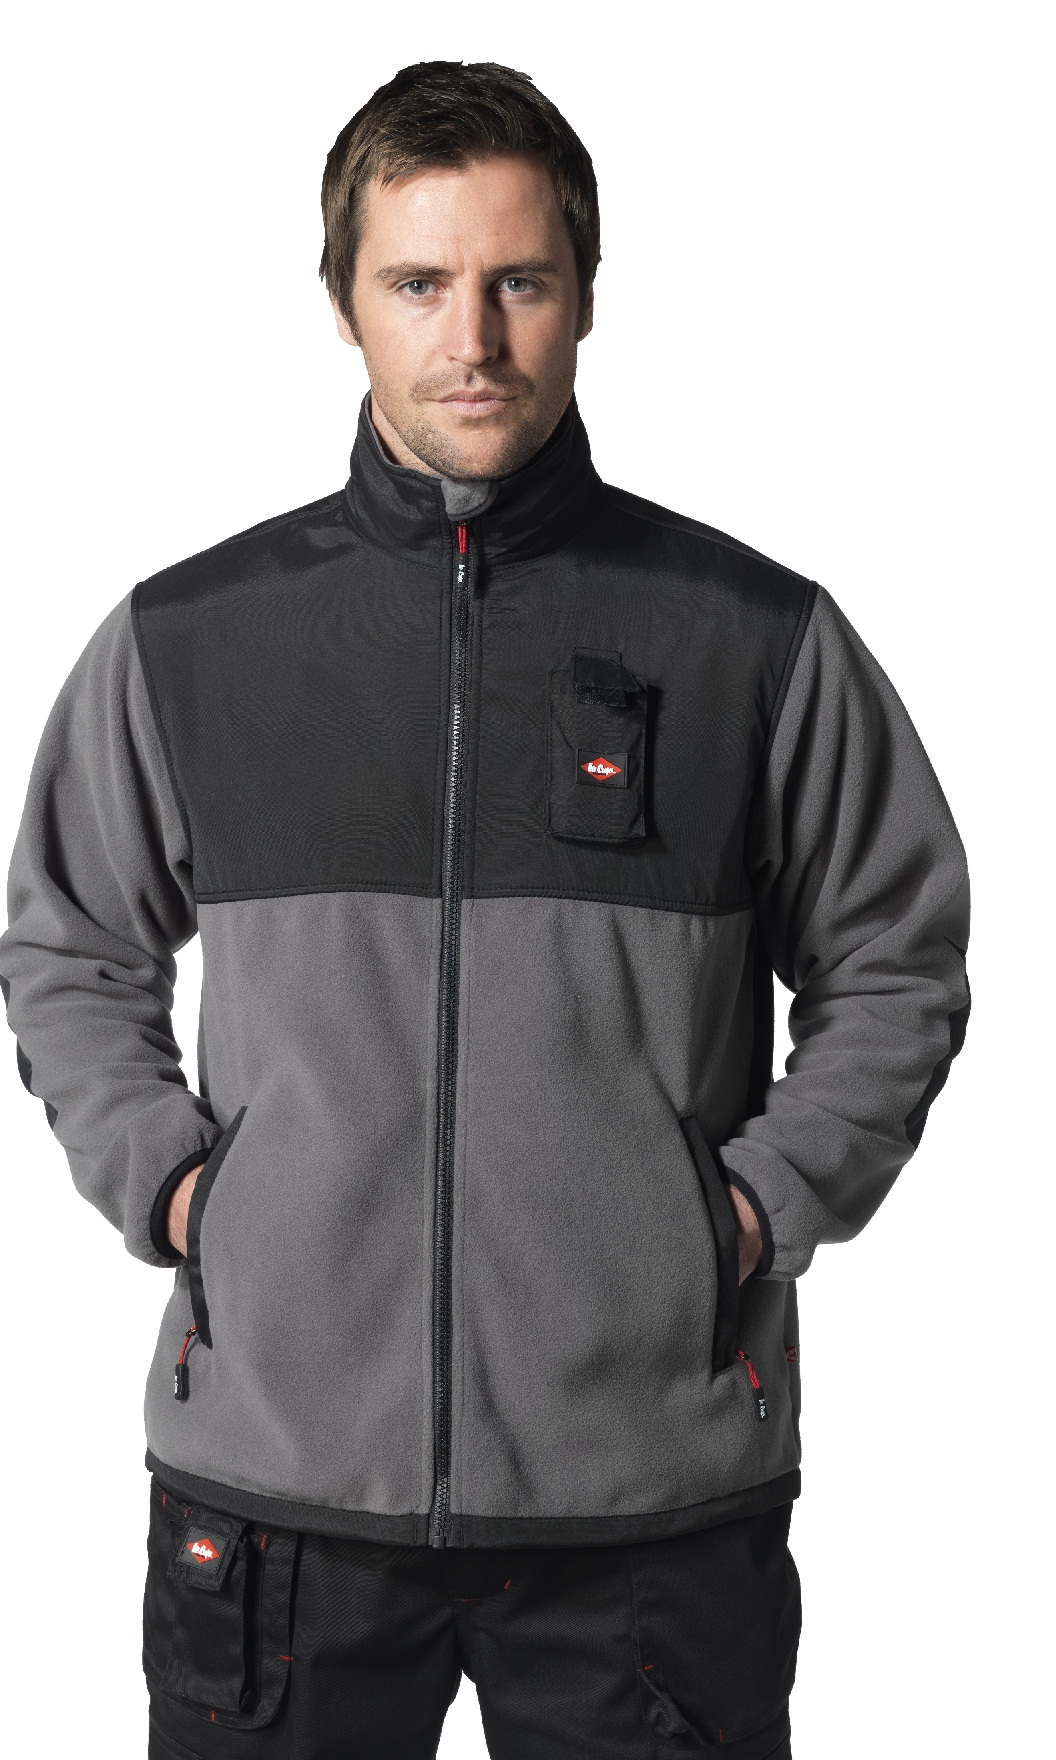 Lee Cooper Workwear Functional Polar Fleece Jacket-G.S.Mahal &amp Co. Ltd